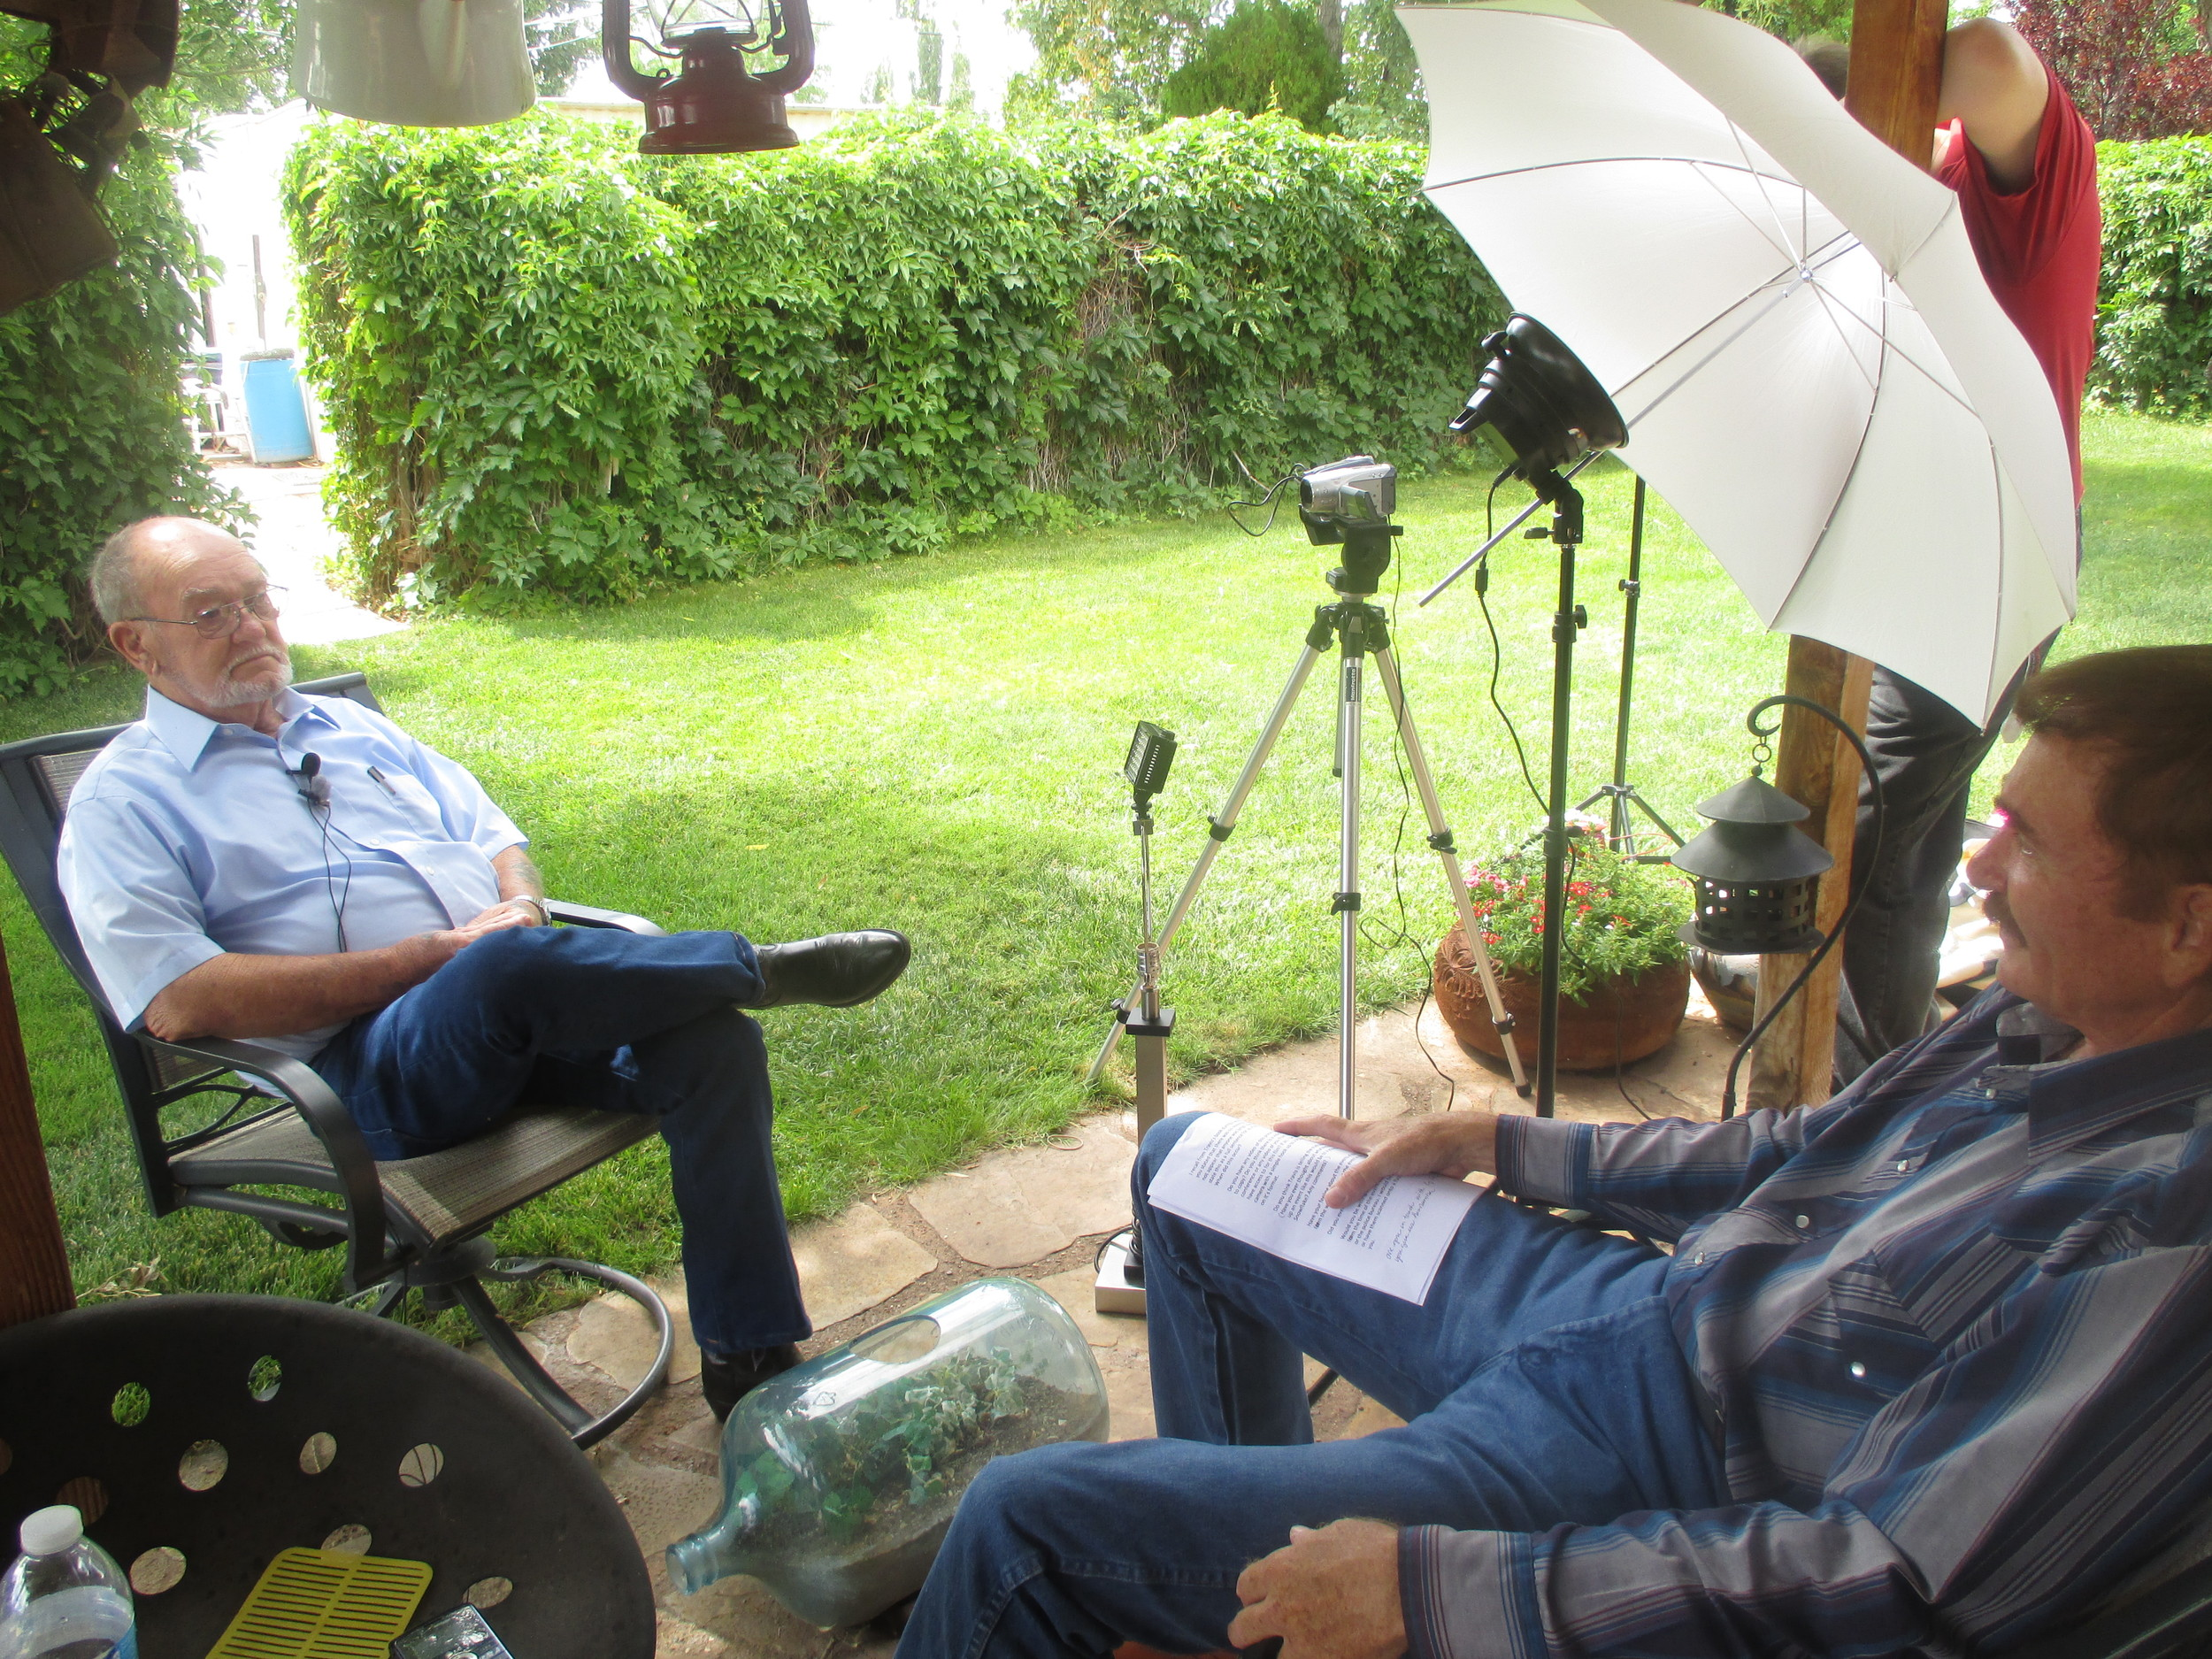 Travis Walton conducting an interview with Sheriff Marlin Gillespie in Holbrook, Arizona, August 2014.  Photo courtesy of  OnWinges Productions.